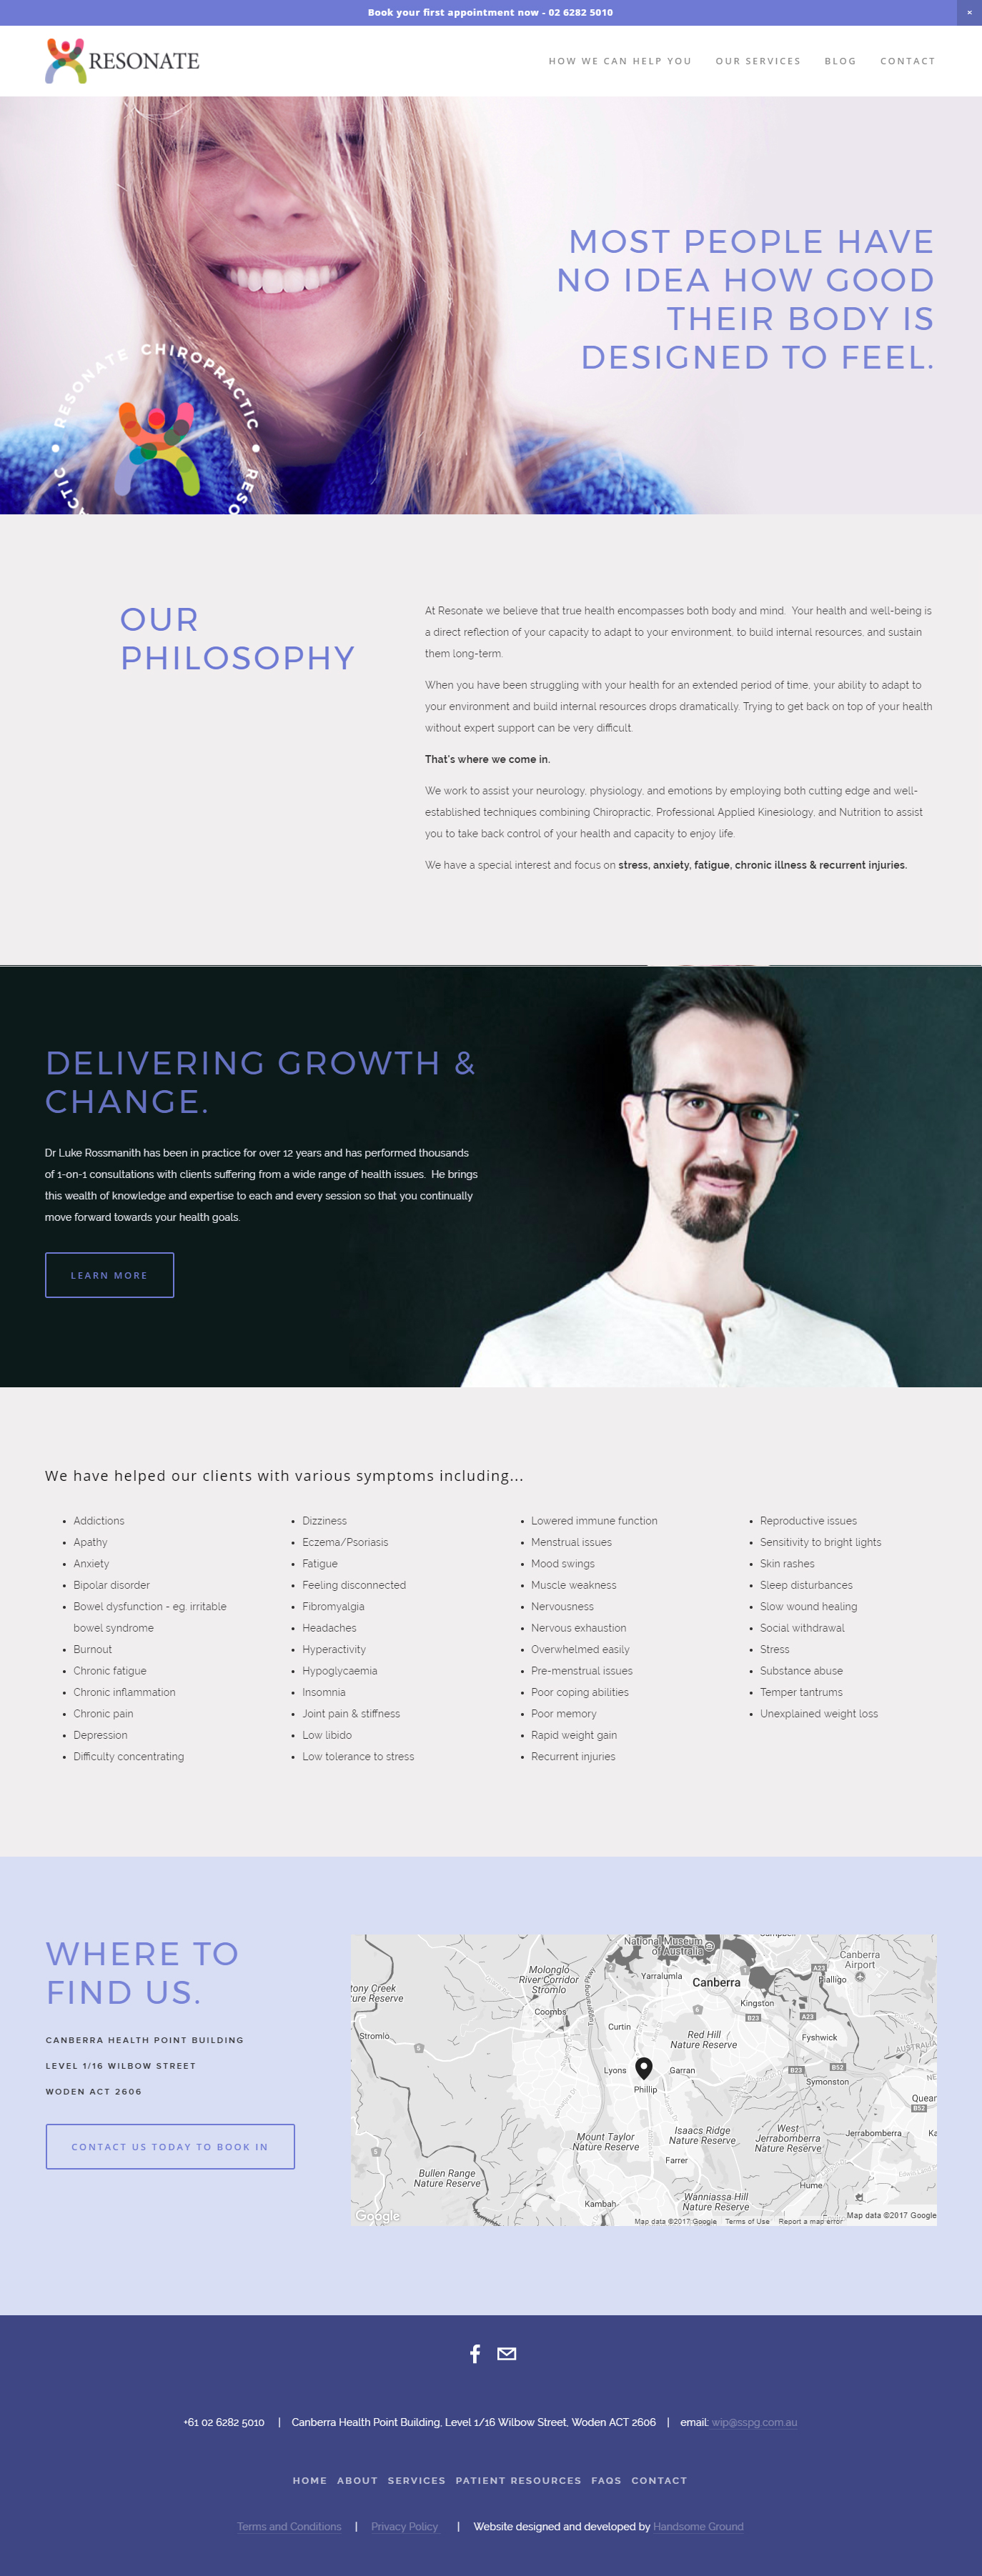 Chiropractic Website design by Handsome Ground Studio